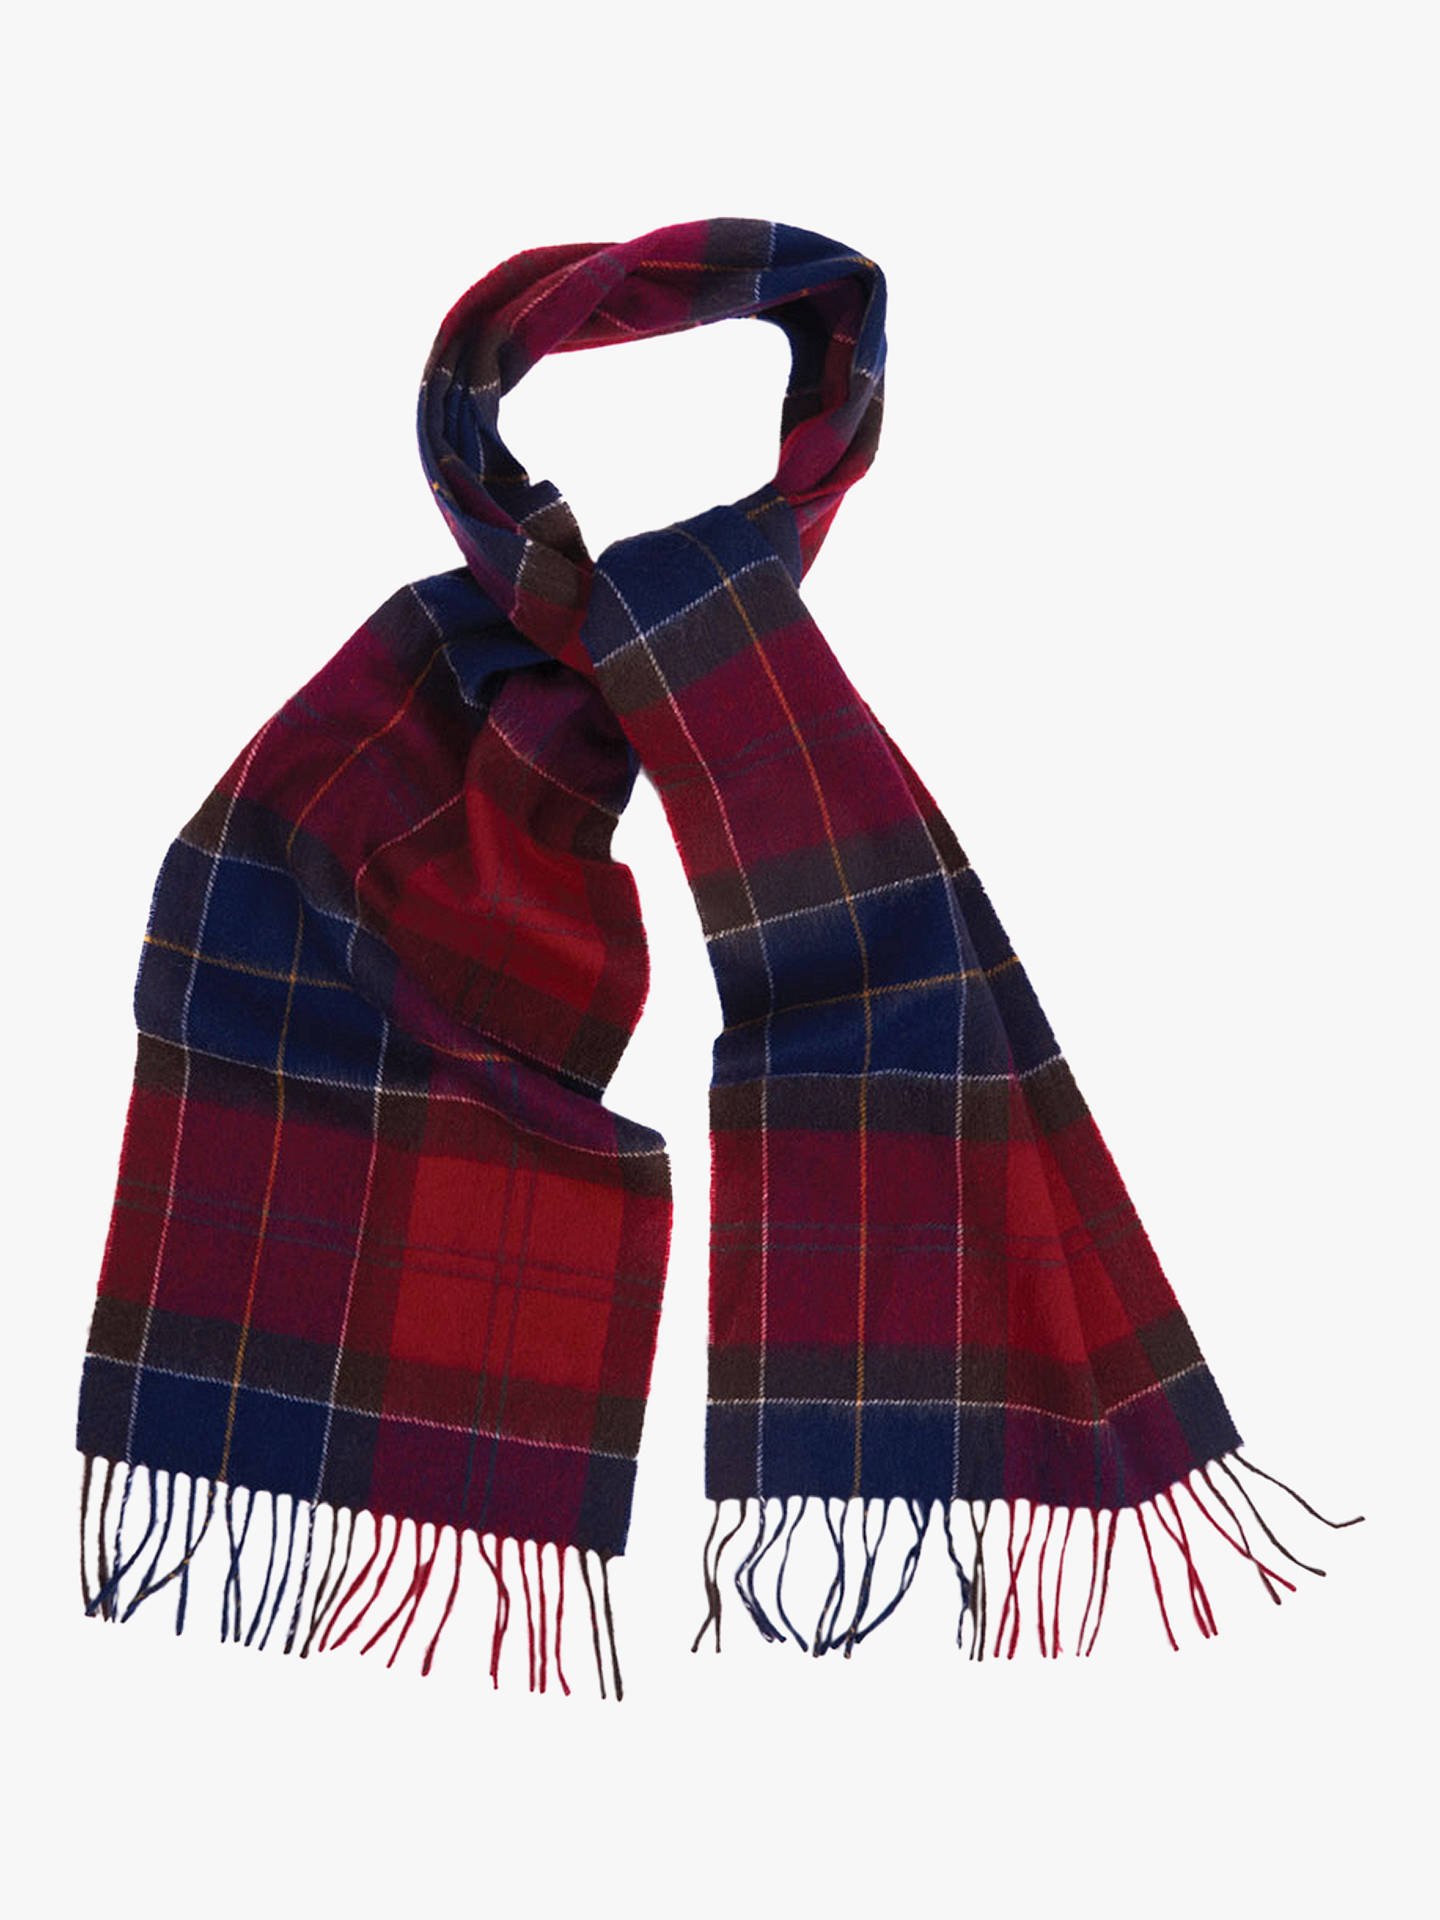 Buy Barbour Holden Tartan Lambswool Cashmere Scarf, Red Online at johnlewis.com